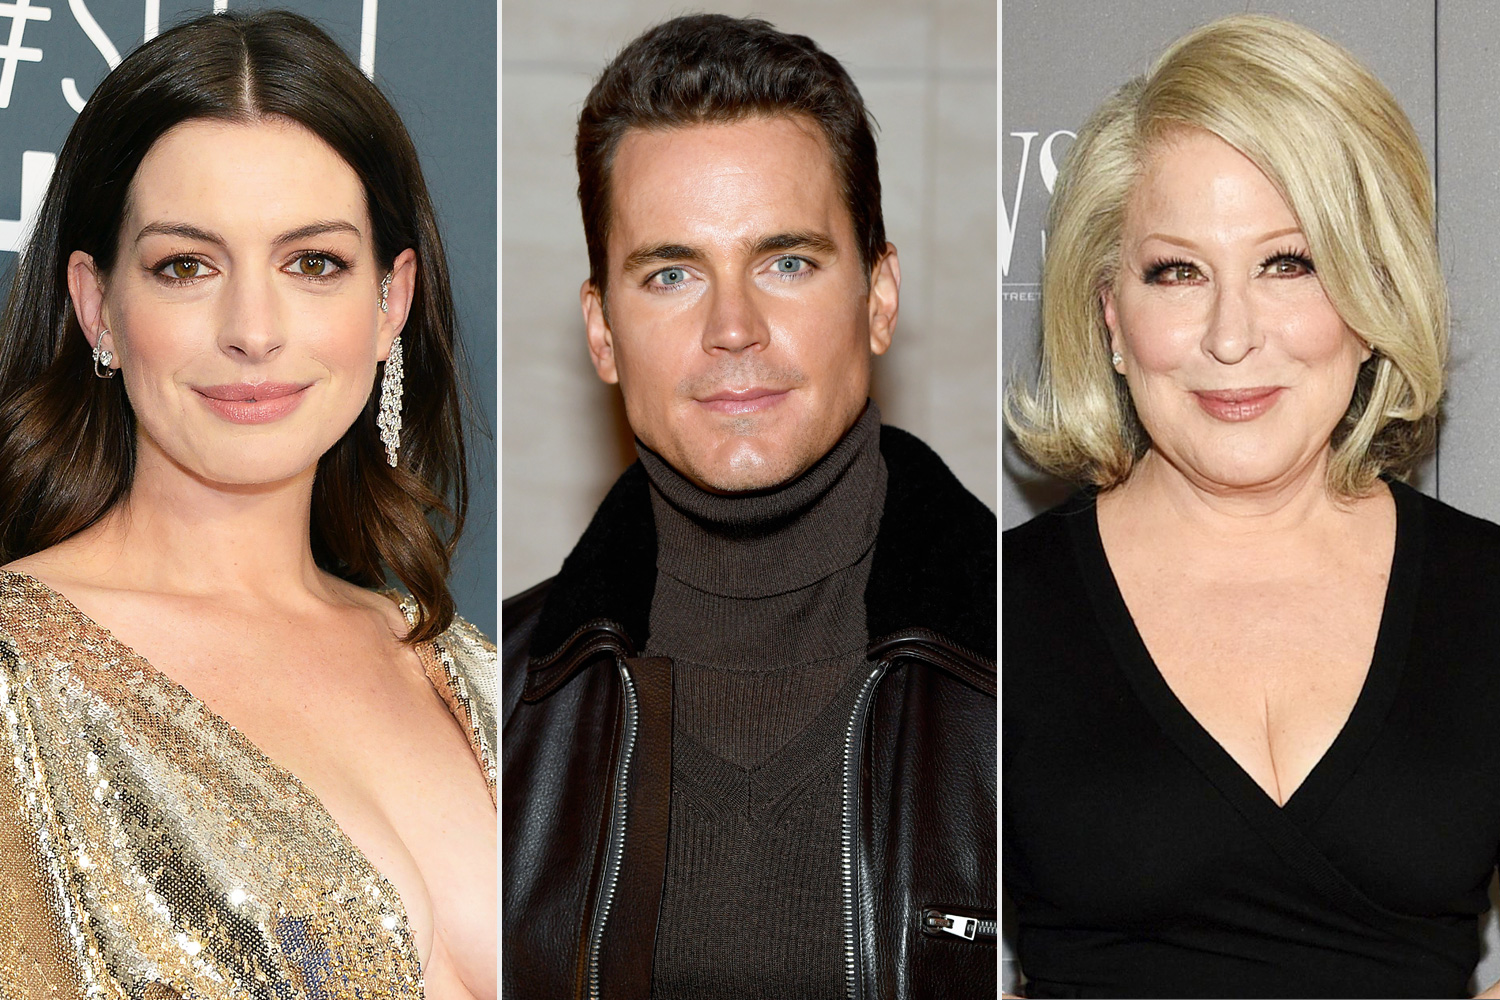 Anne Hathaway, Matt Bomer and Bette Midler doing the AIDS Walks: Live From Home benefit show